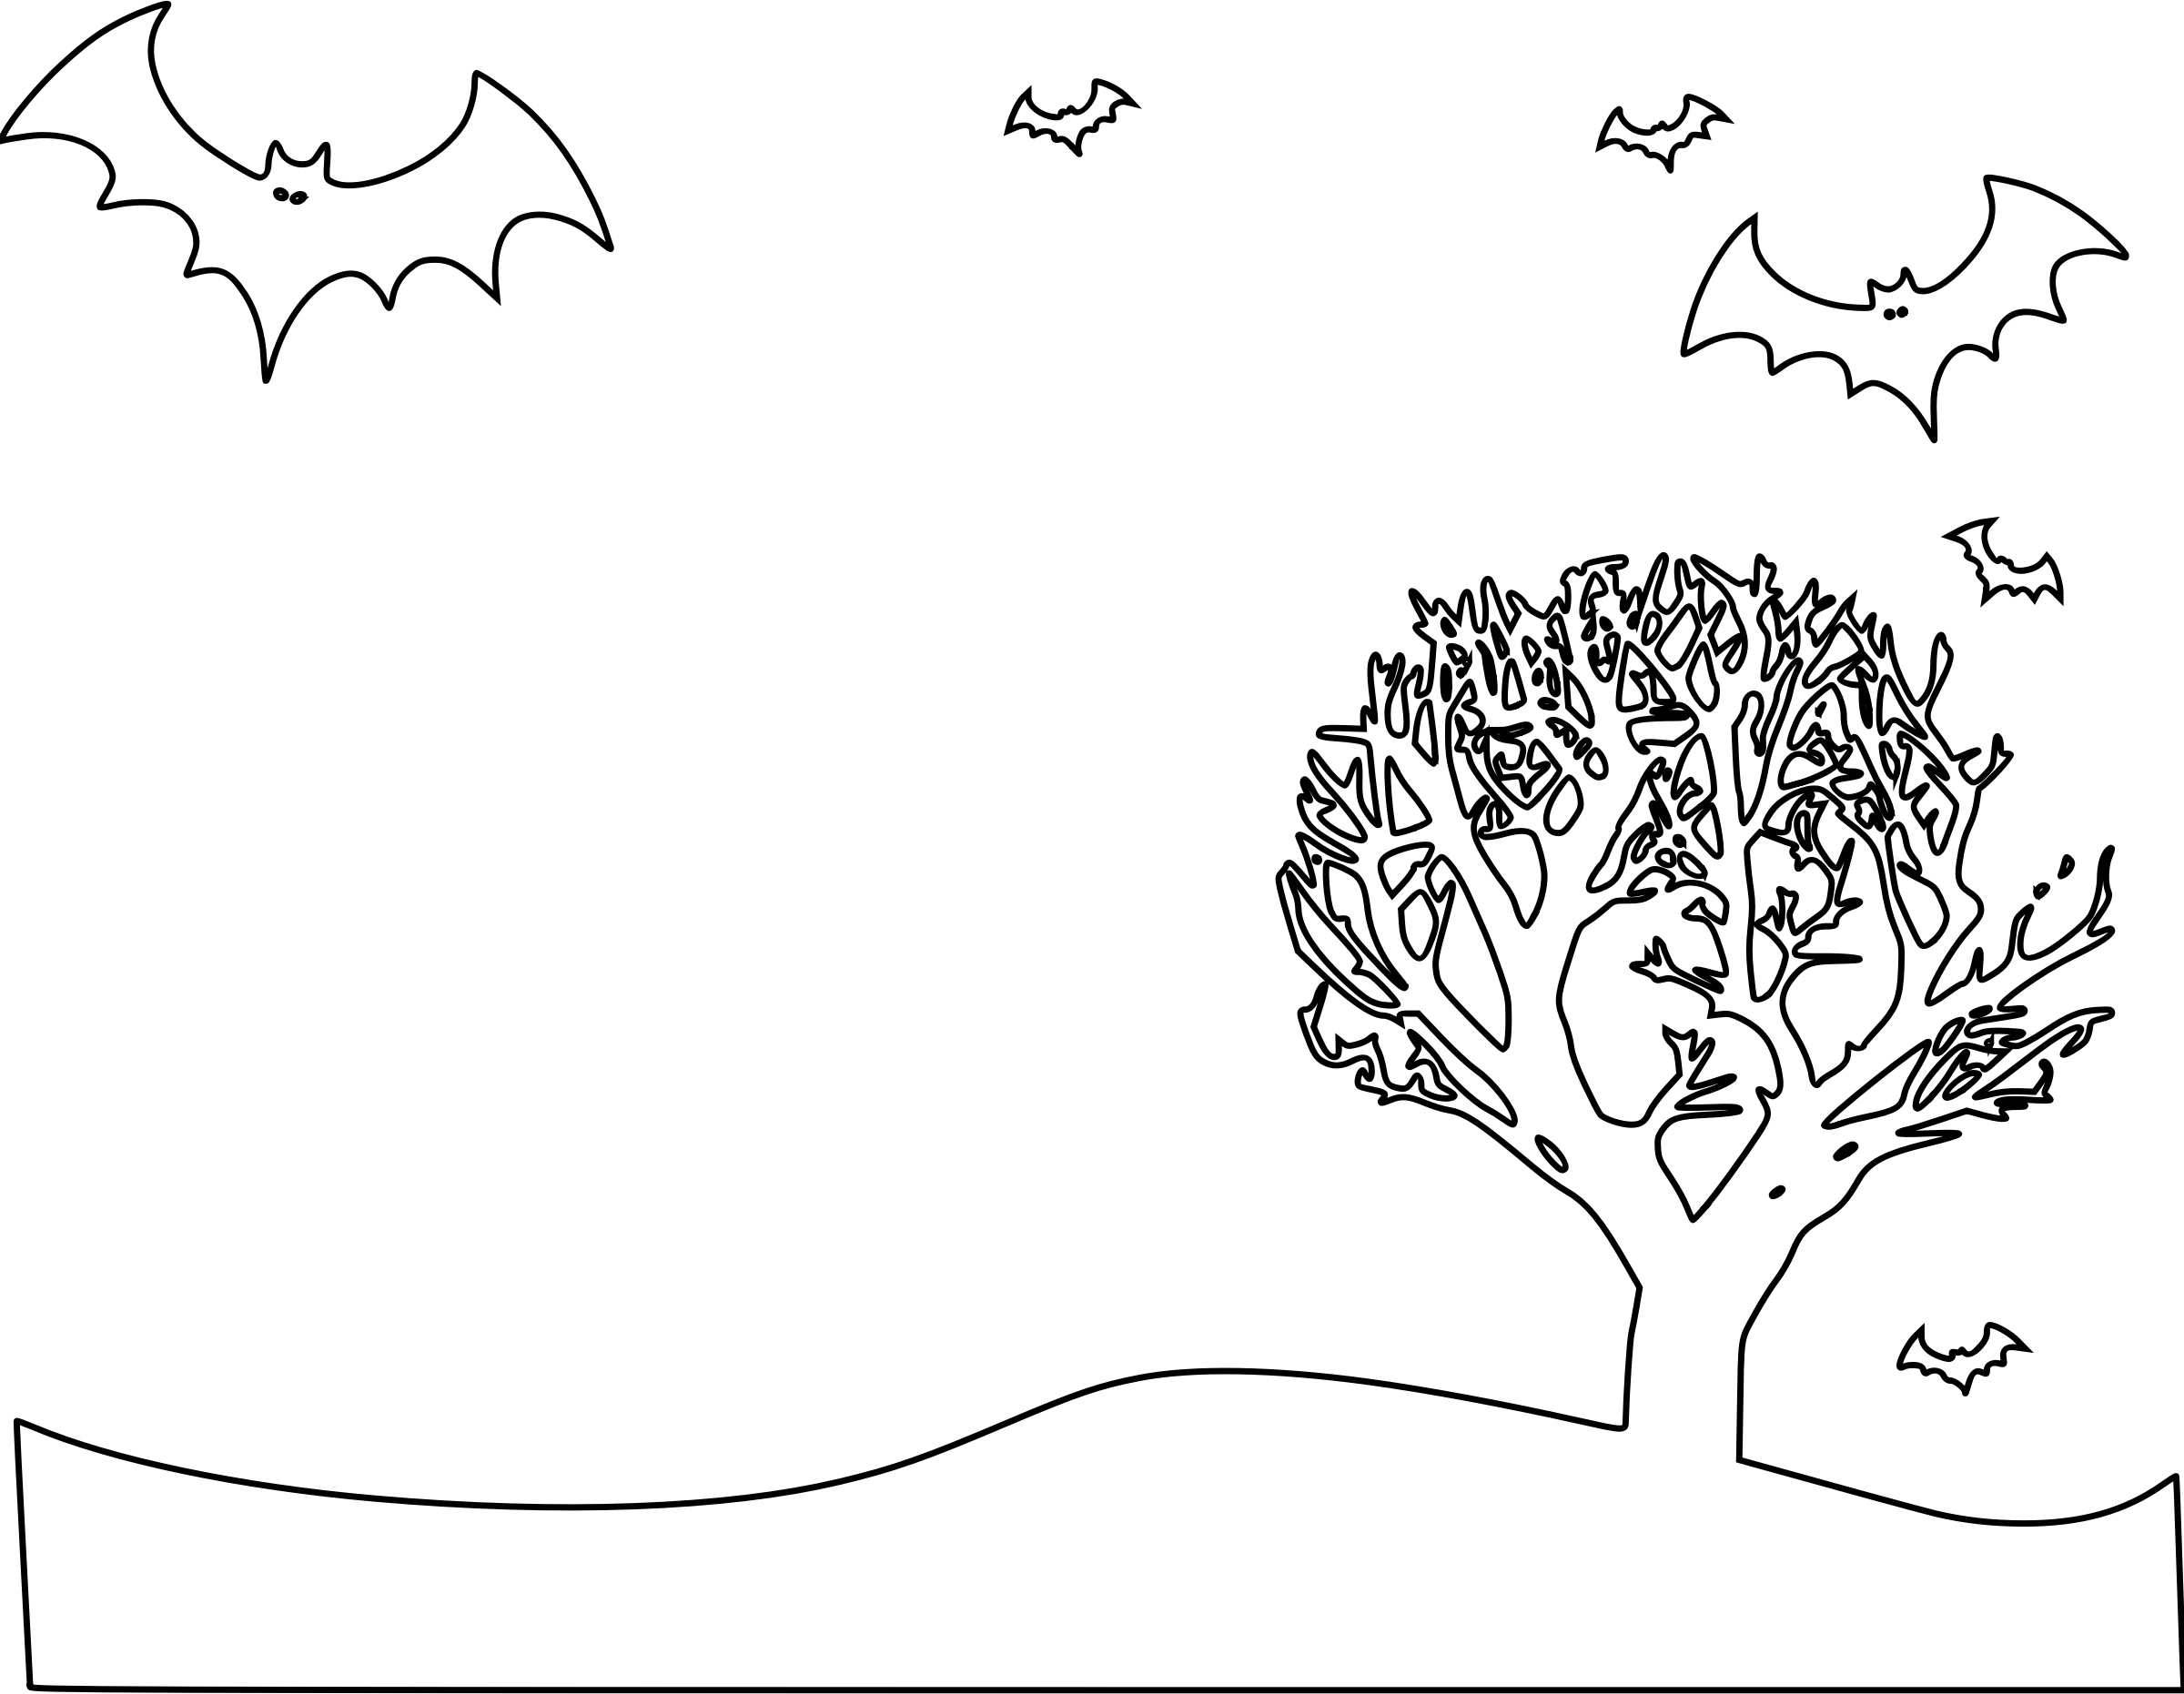 Drawing halloween landscape. Collection of high